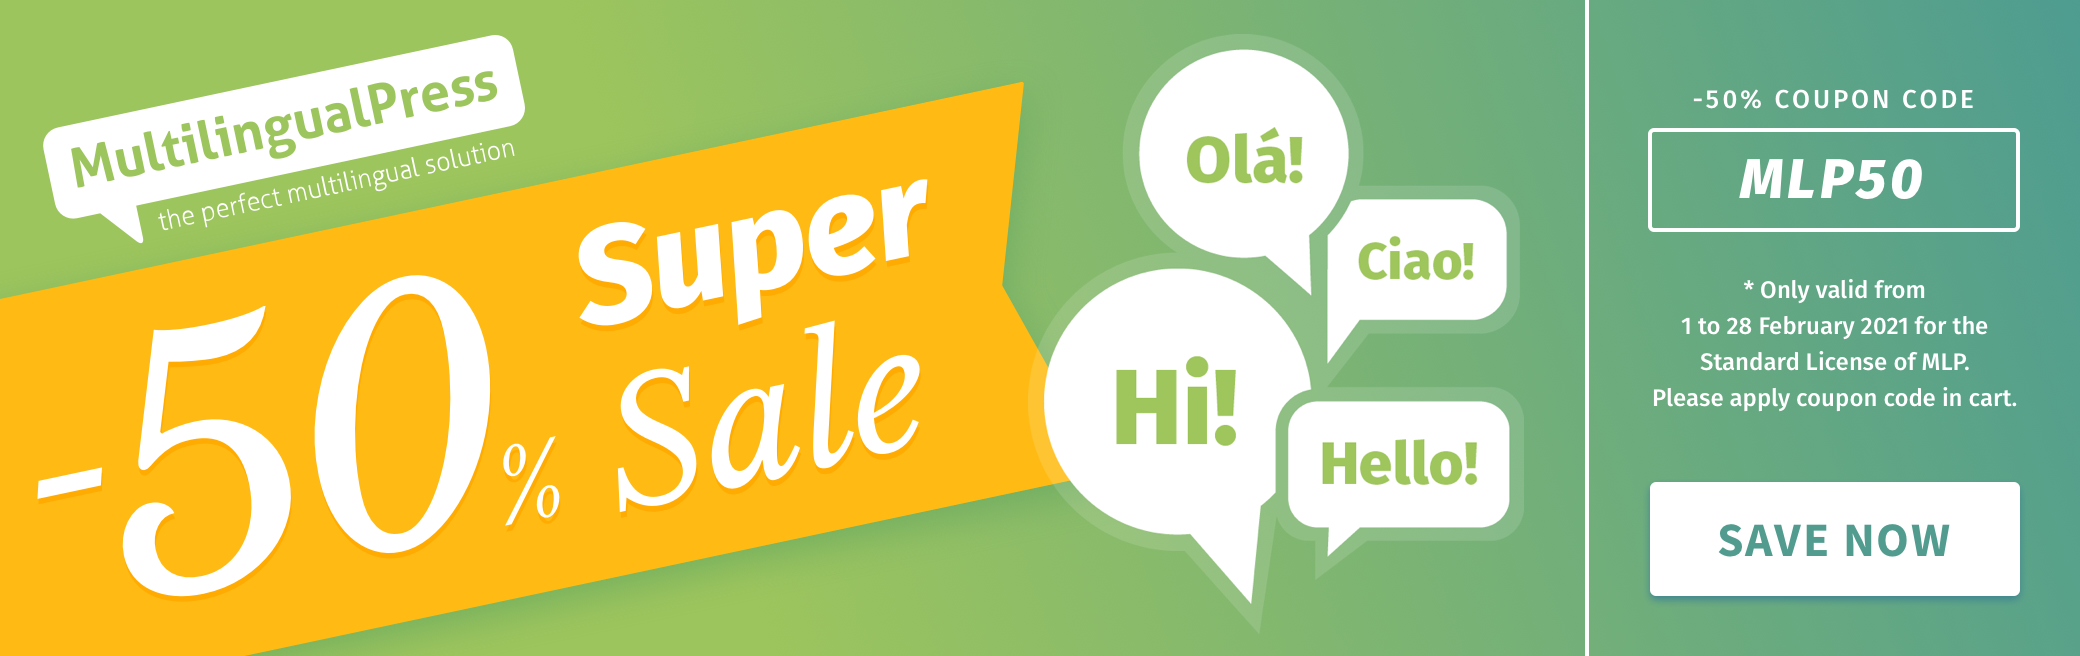 MultilingualPress -50% Super Sale! Only valid from 1st to 28th February for the Standard License of MultilingualPress. Please use the Coupon Code MLP50 on the cart checkout page.